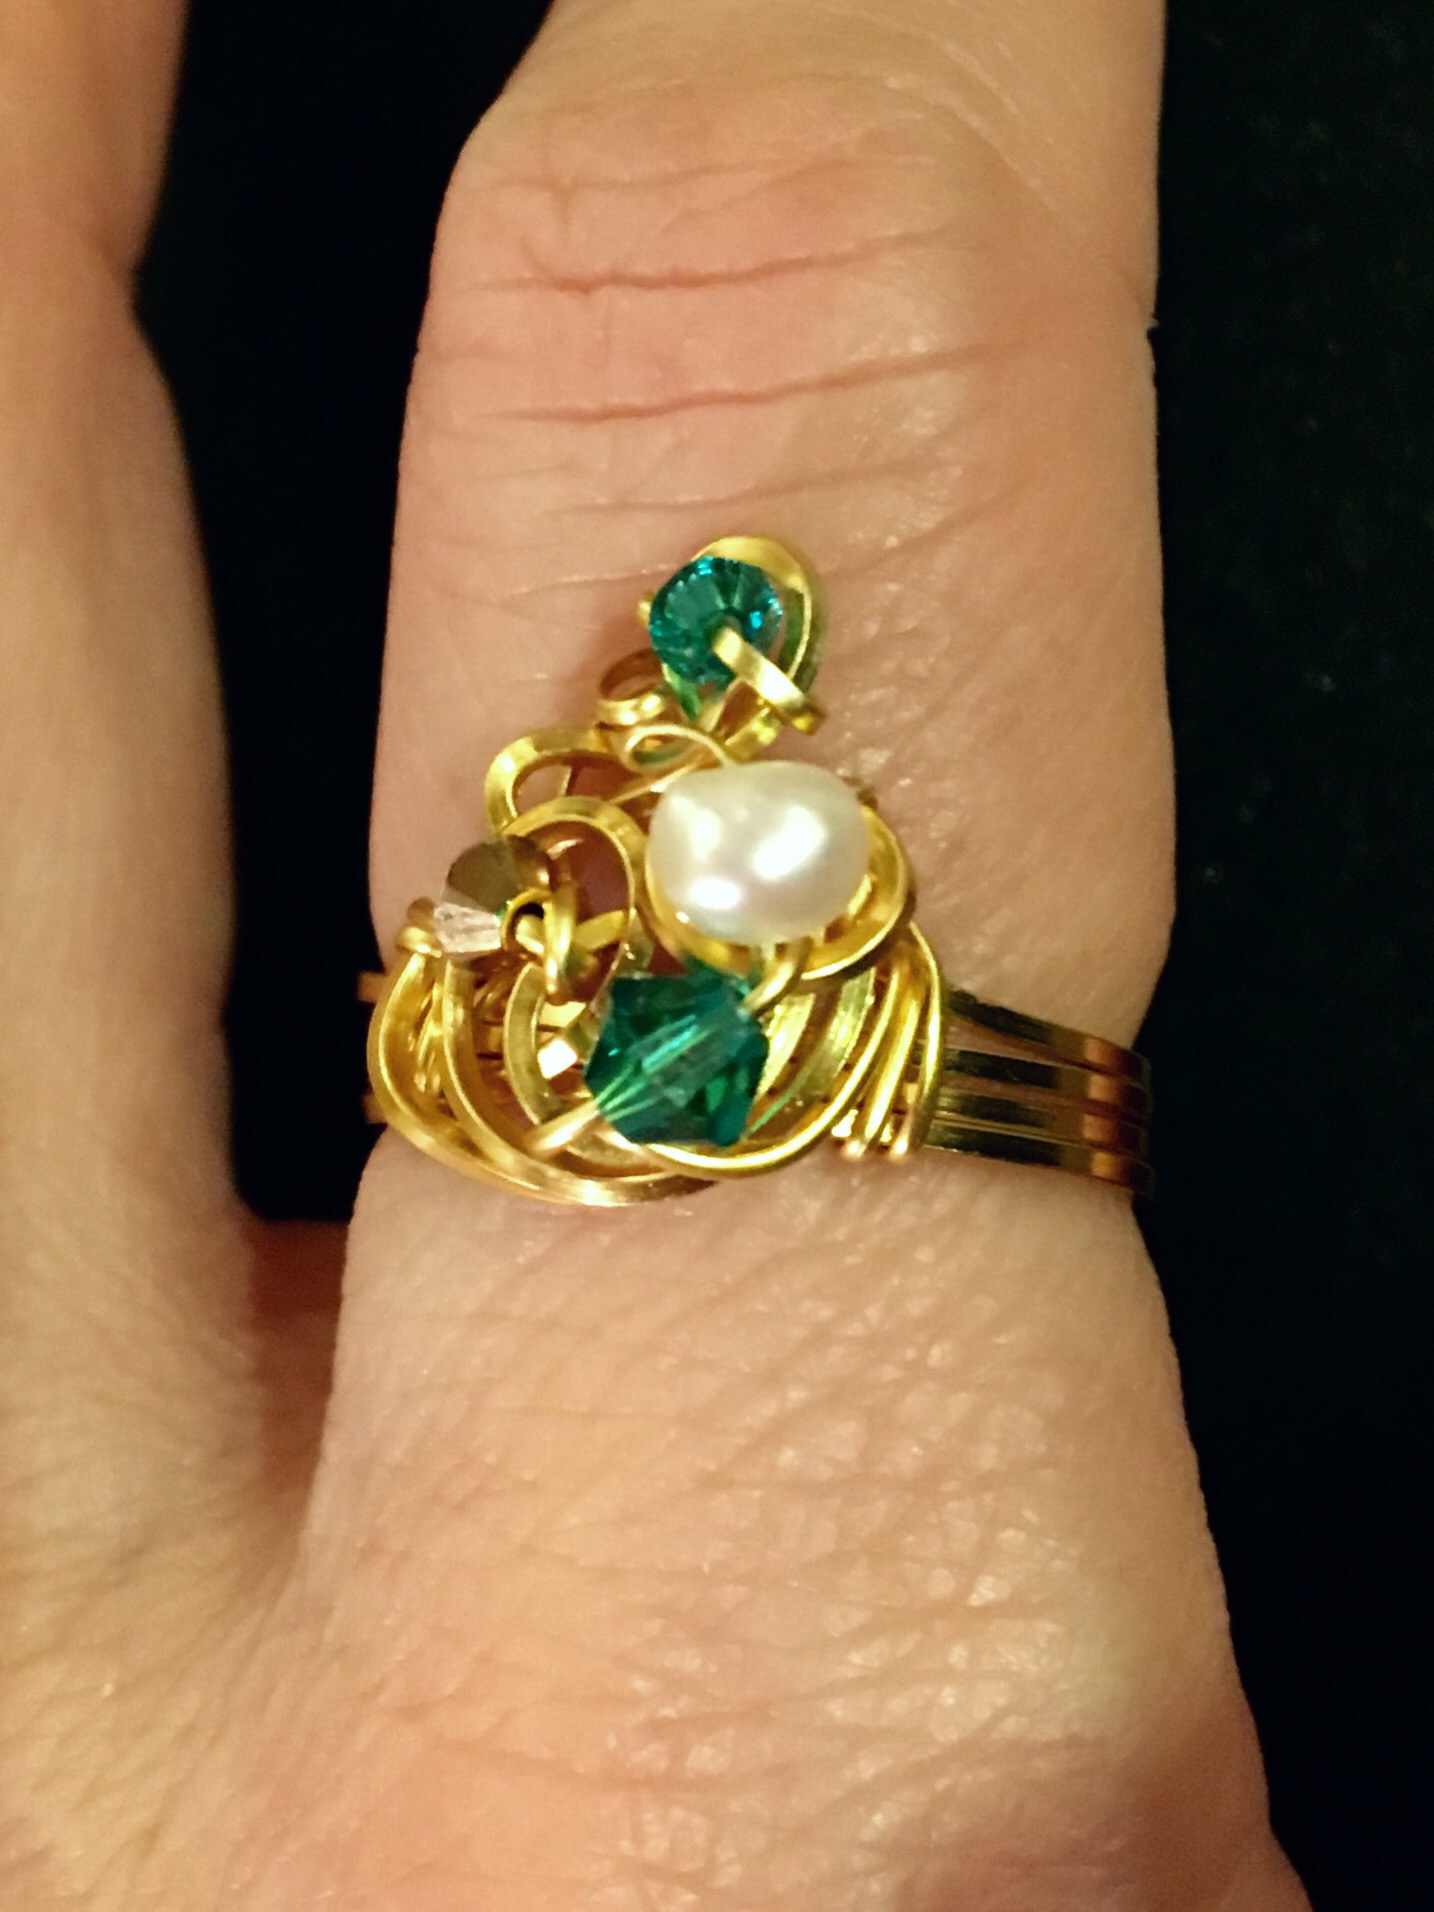 Dainty Deva Ring - Pearls and green swarovsky - silver Plated Gold Color.